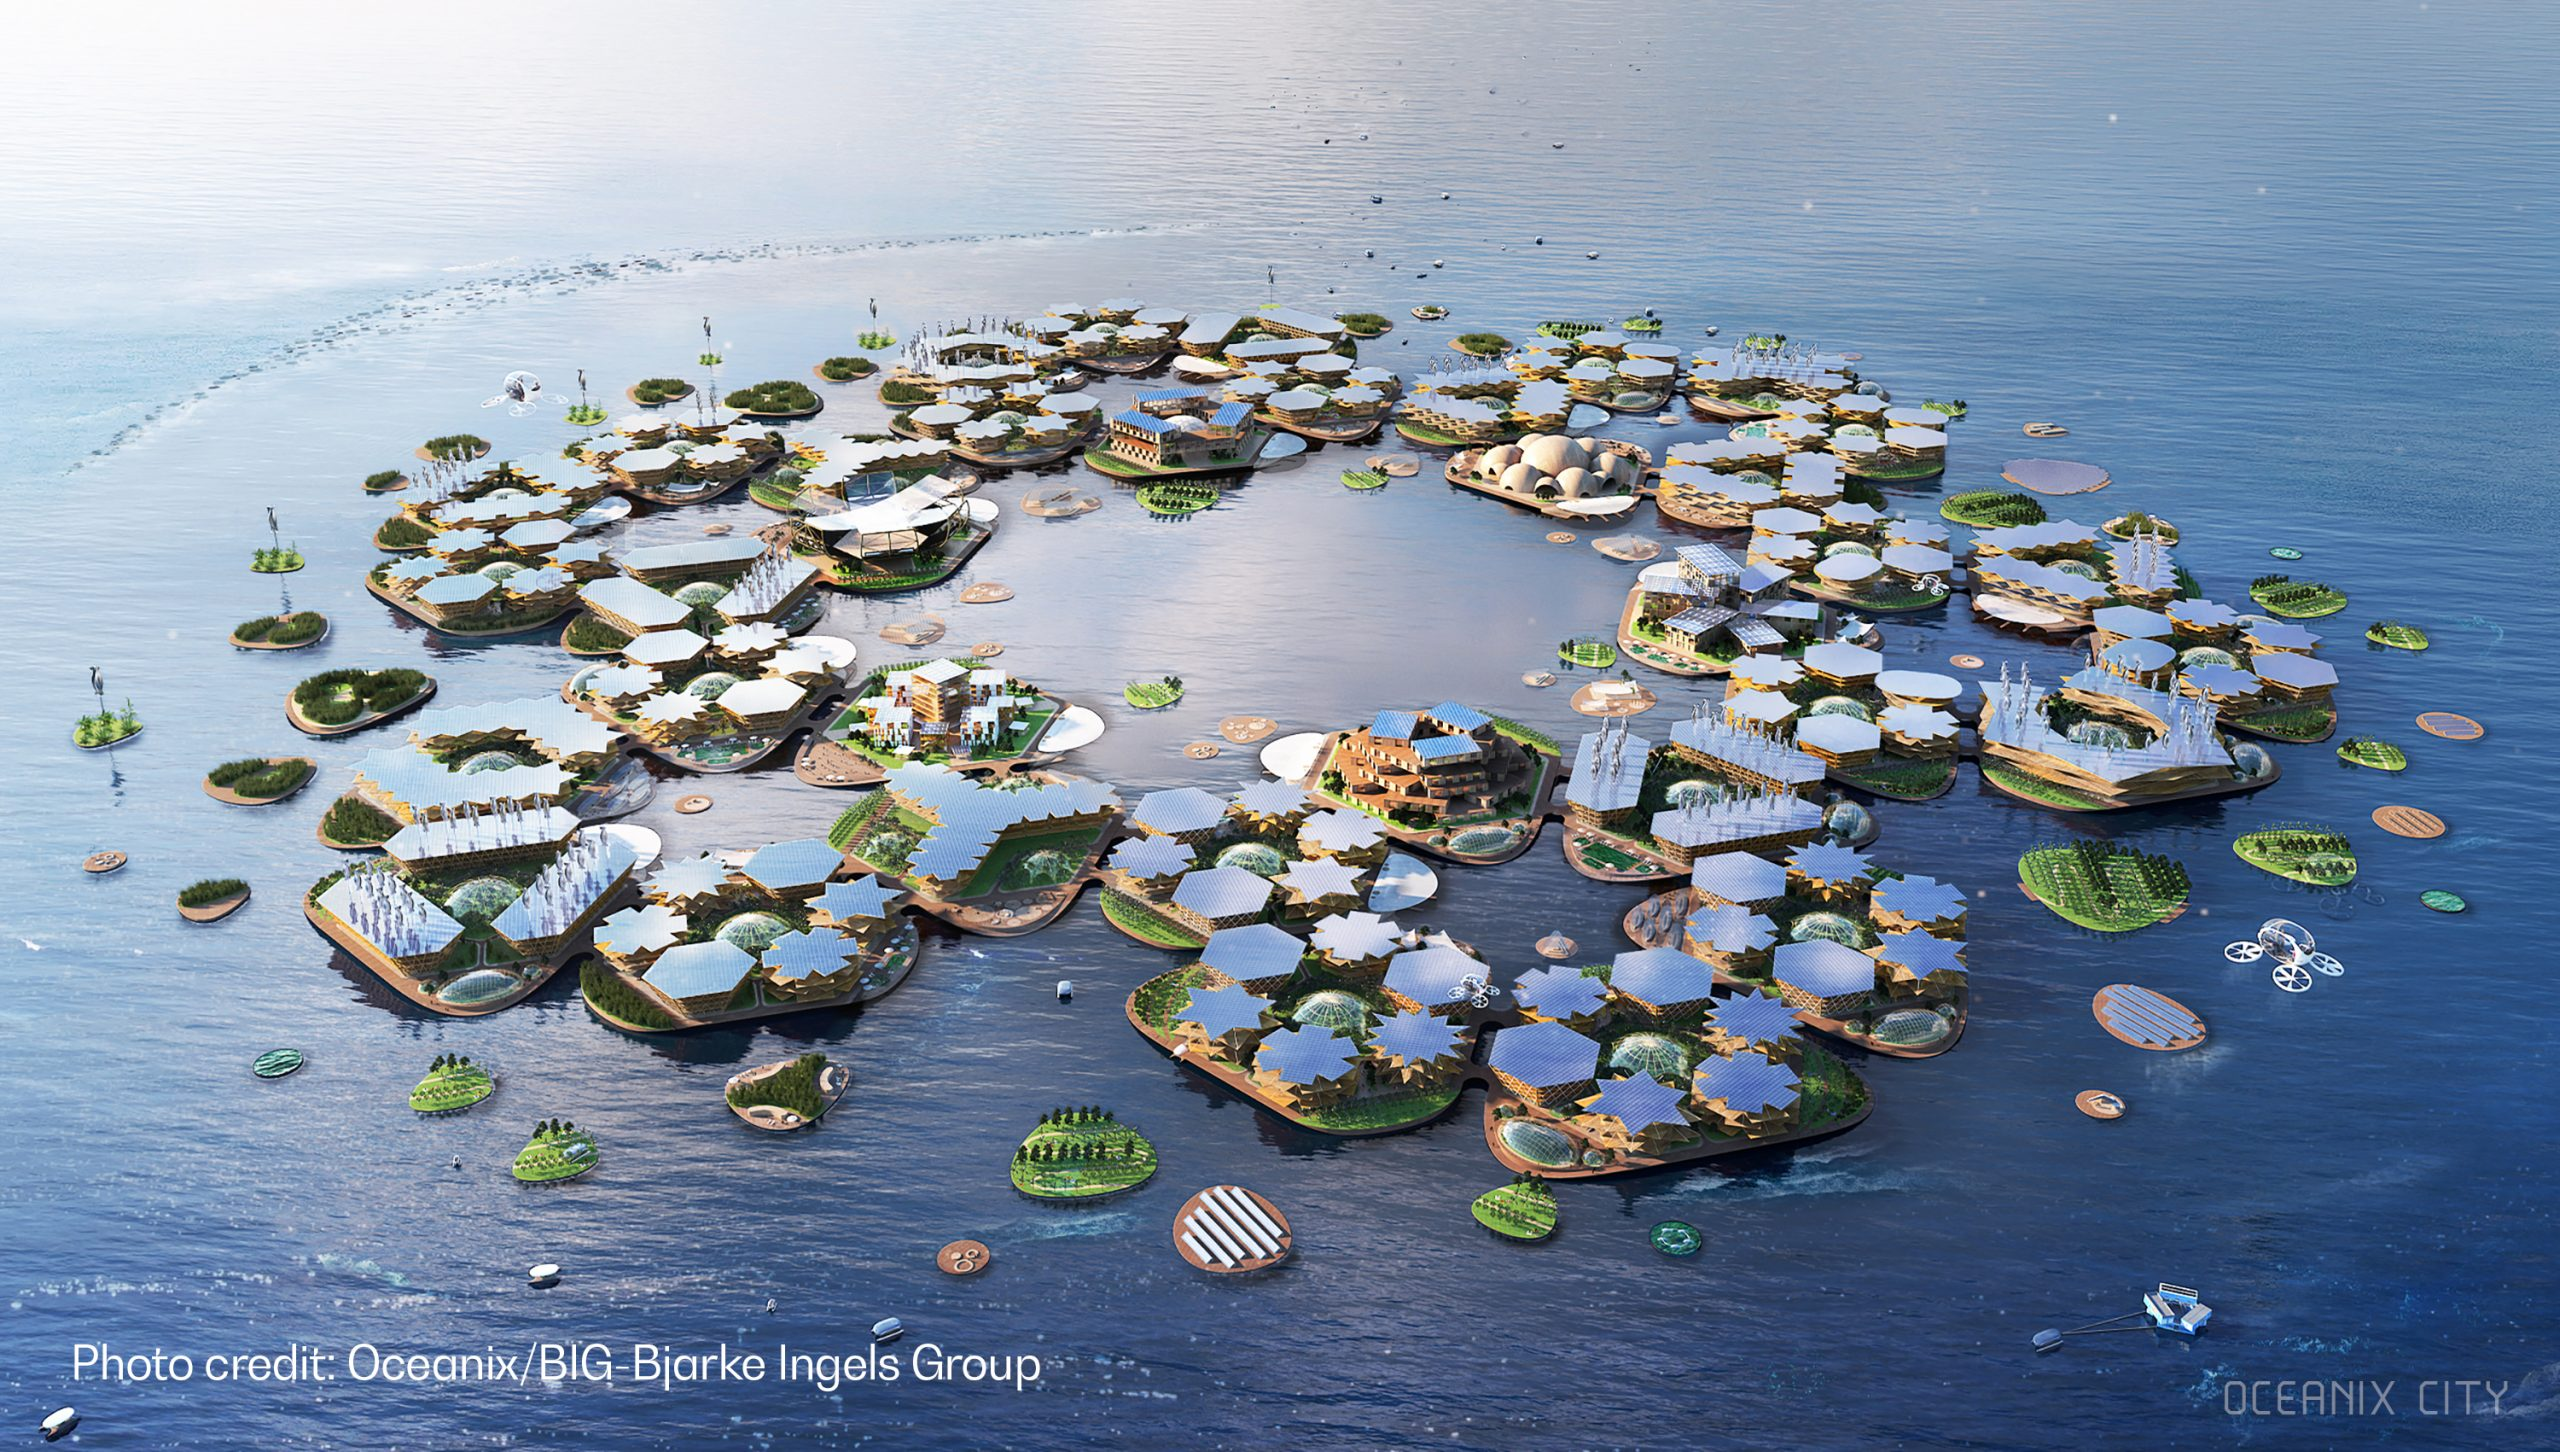 floating city of 10,000 people